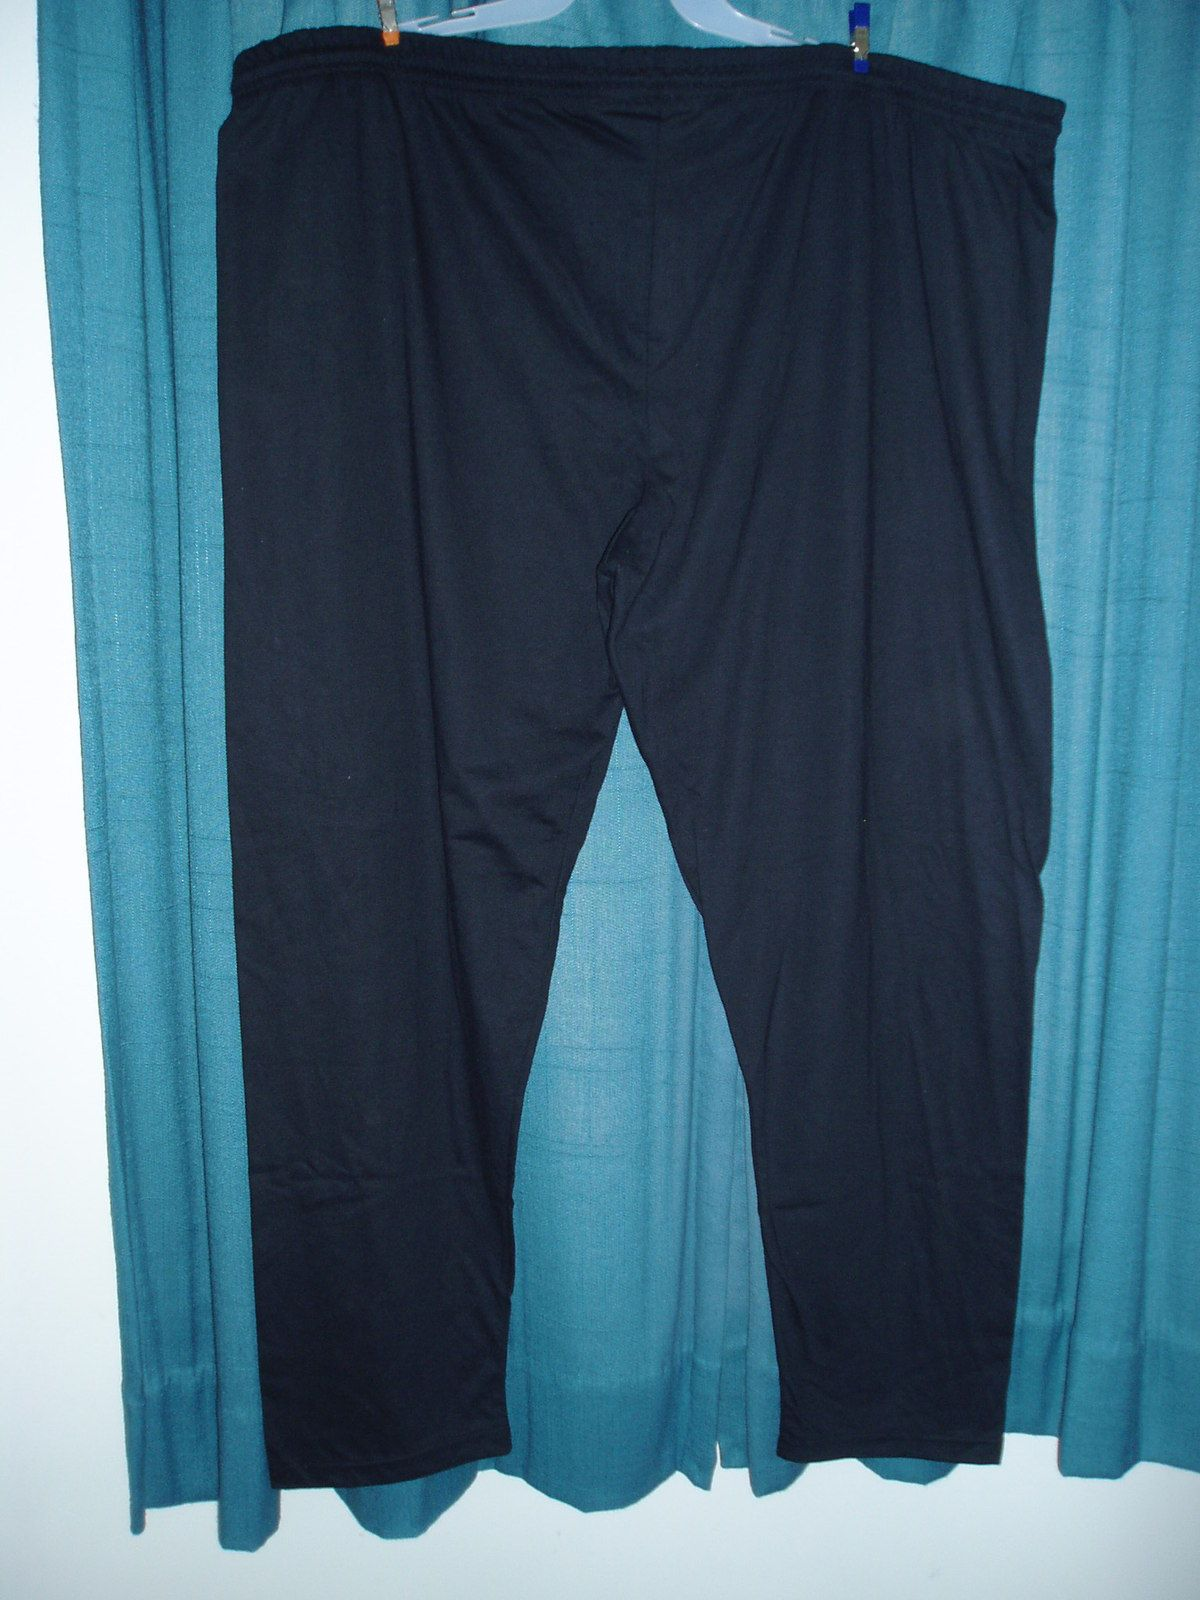 60e57ea54faf LADIES PLUS SIZE COTTON PANTS ELASTIC WAISTBAND  NO POCKETS OPEN AT ANKLES  SLIGHTLY TAPERED LEG